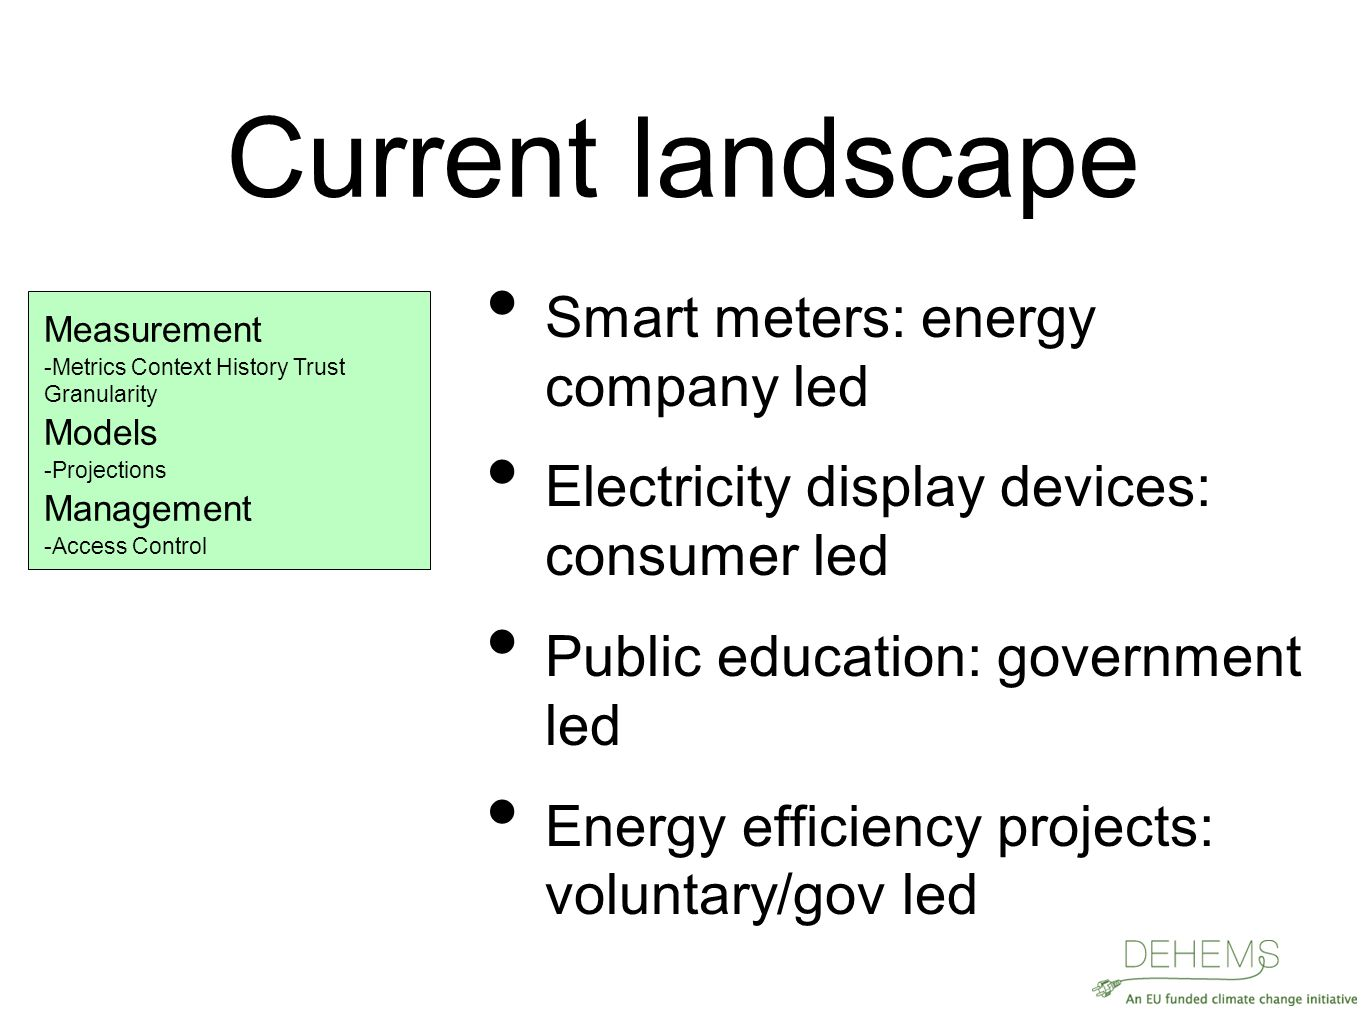 Current landscape Smart meters: energy company led Electricity display devices: consumer led Public education: government led Energy efficiency projects: voluntary/gov led Measurement  Metrics Context History Trust Granularity Metrics Context History Trust Granularity Models  Projections Projections Management  Access Control Access Control